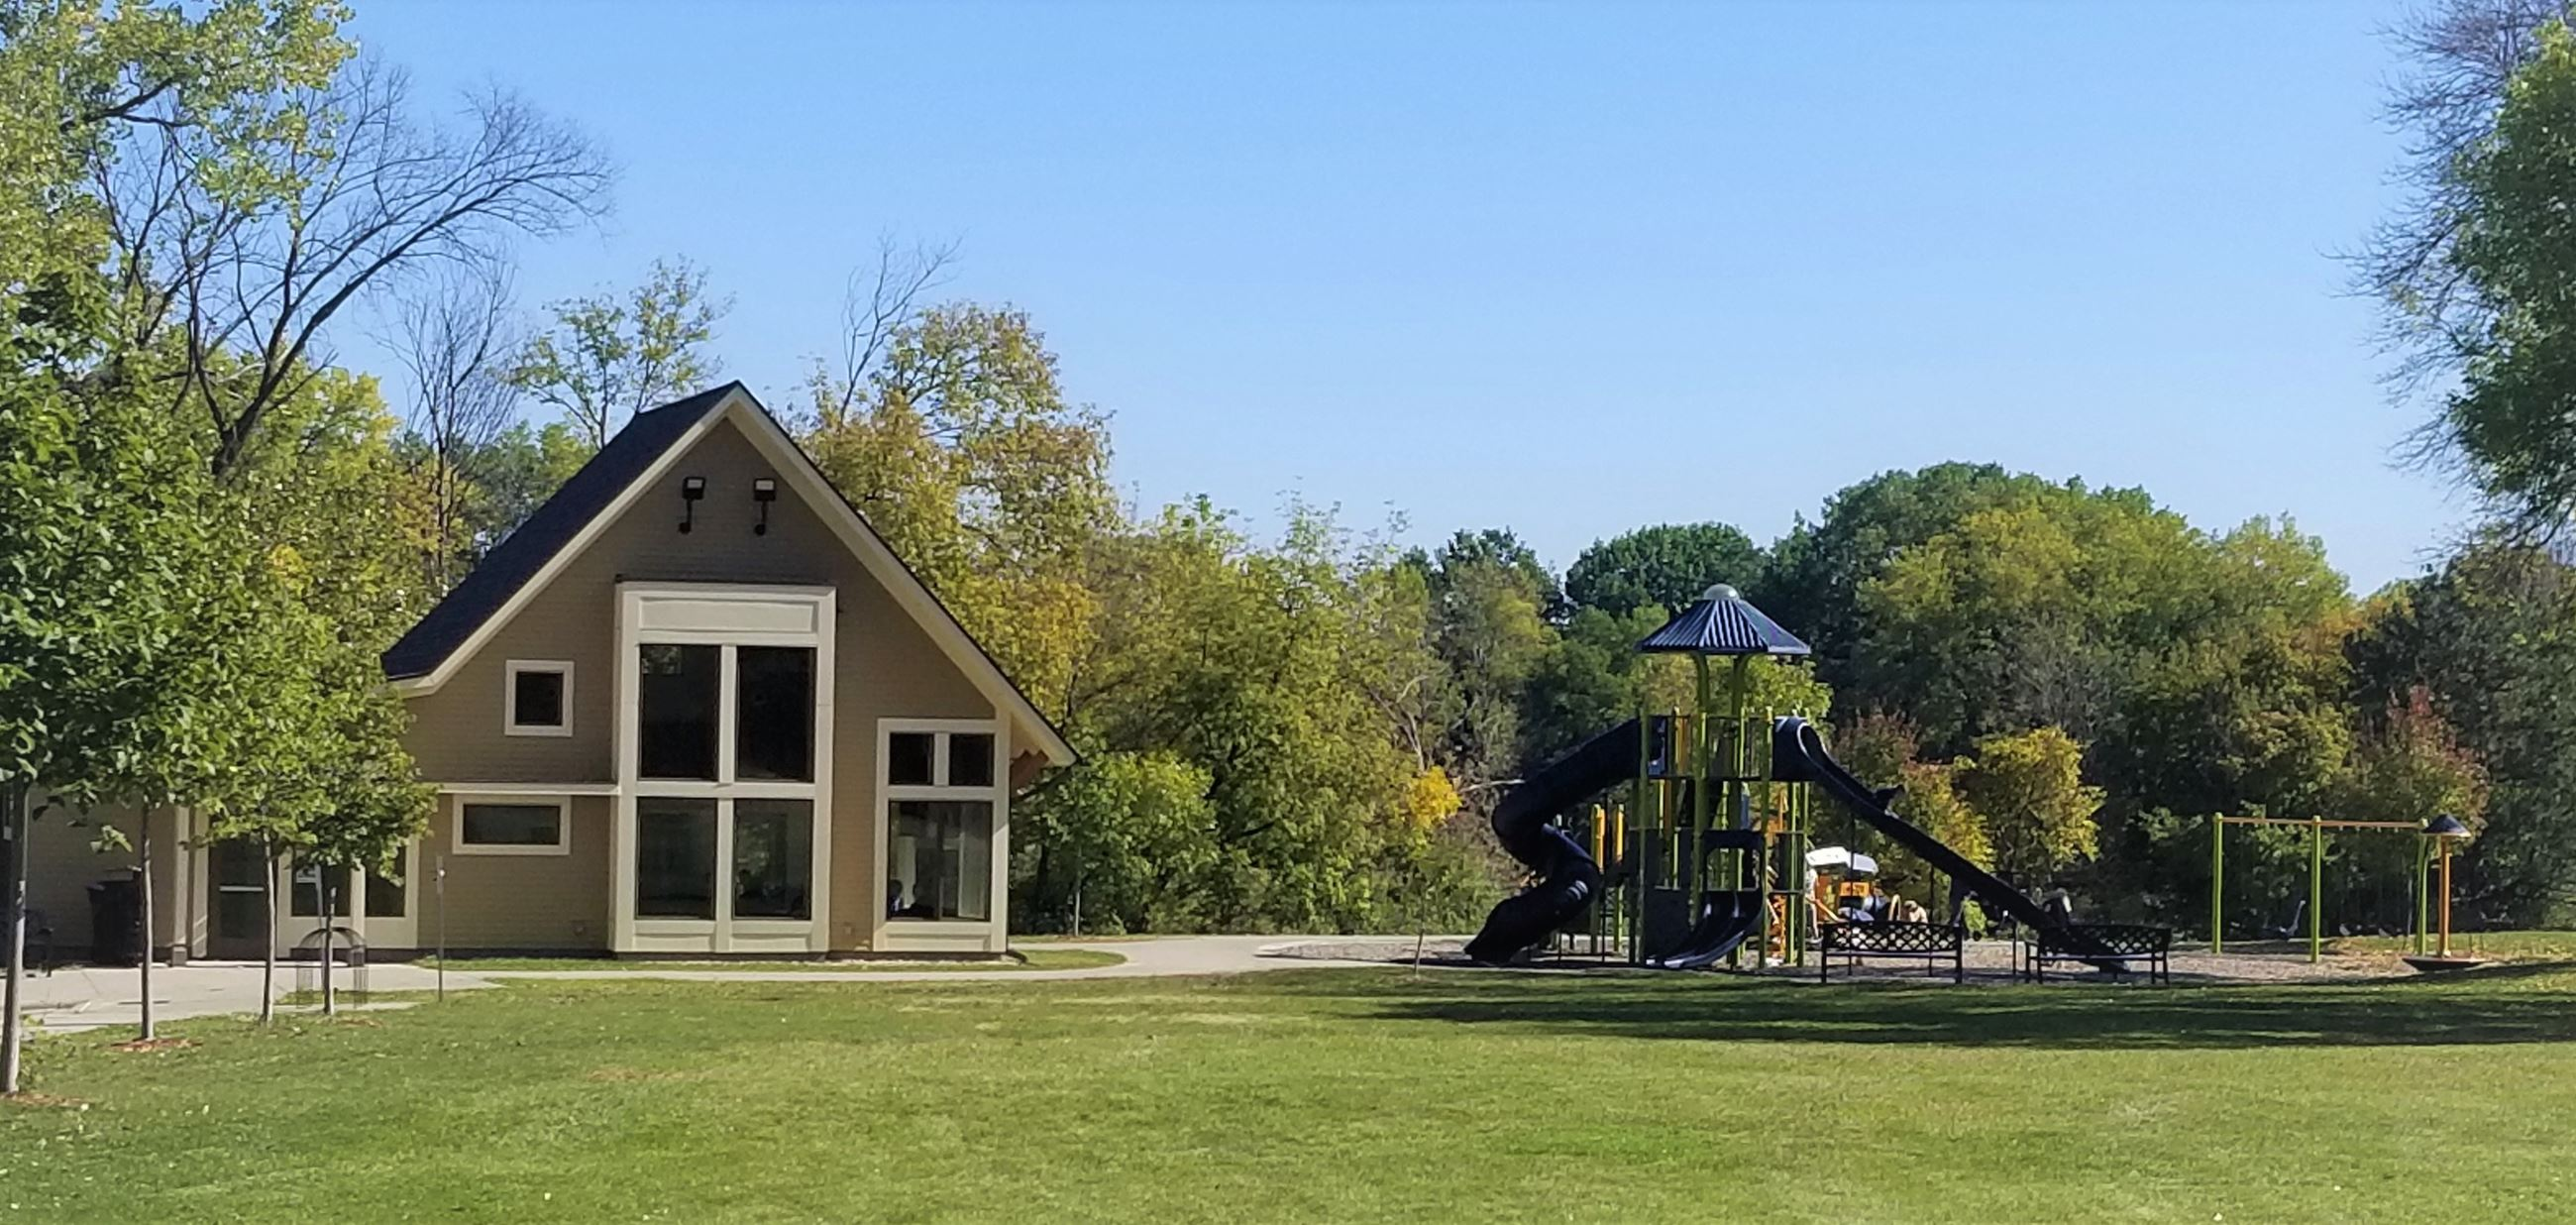 Oasis Park Building and Playground